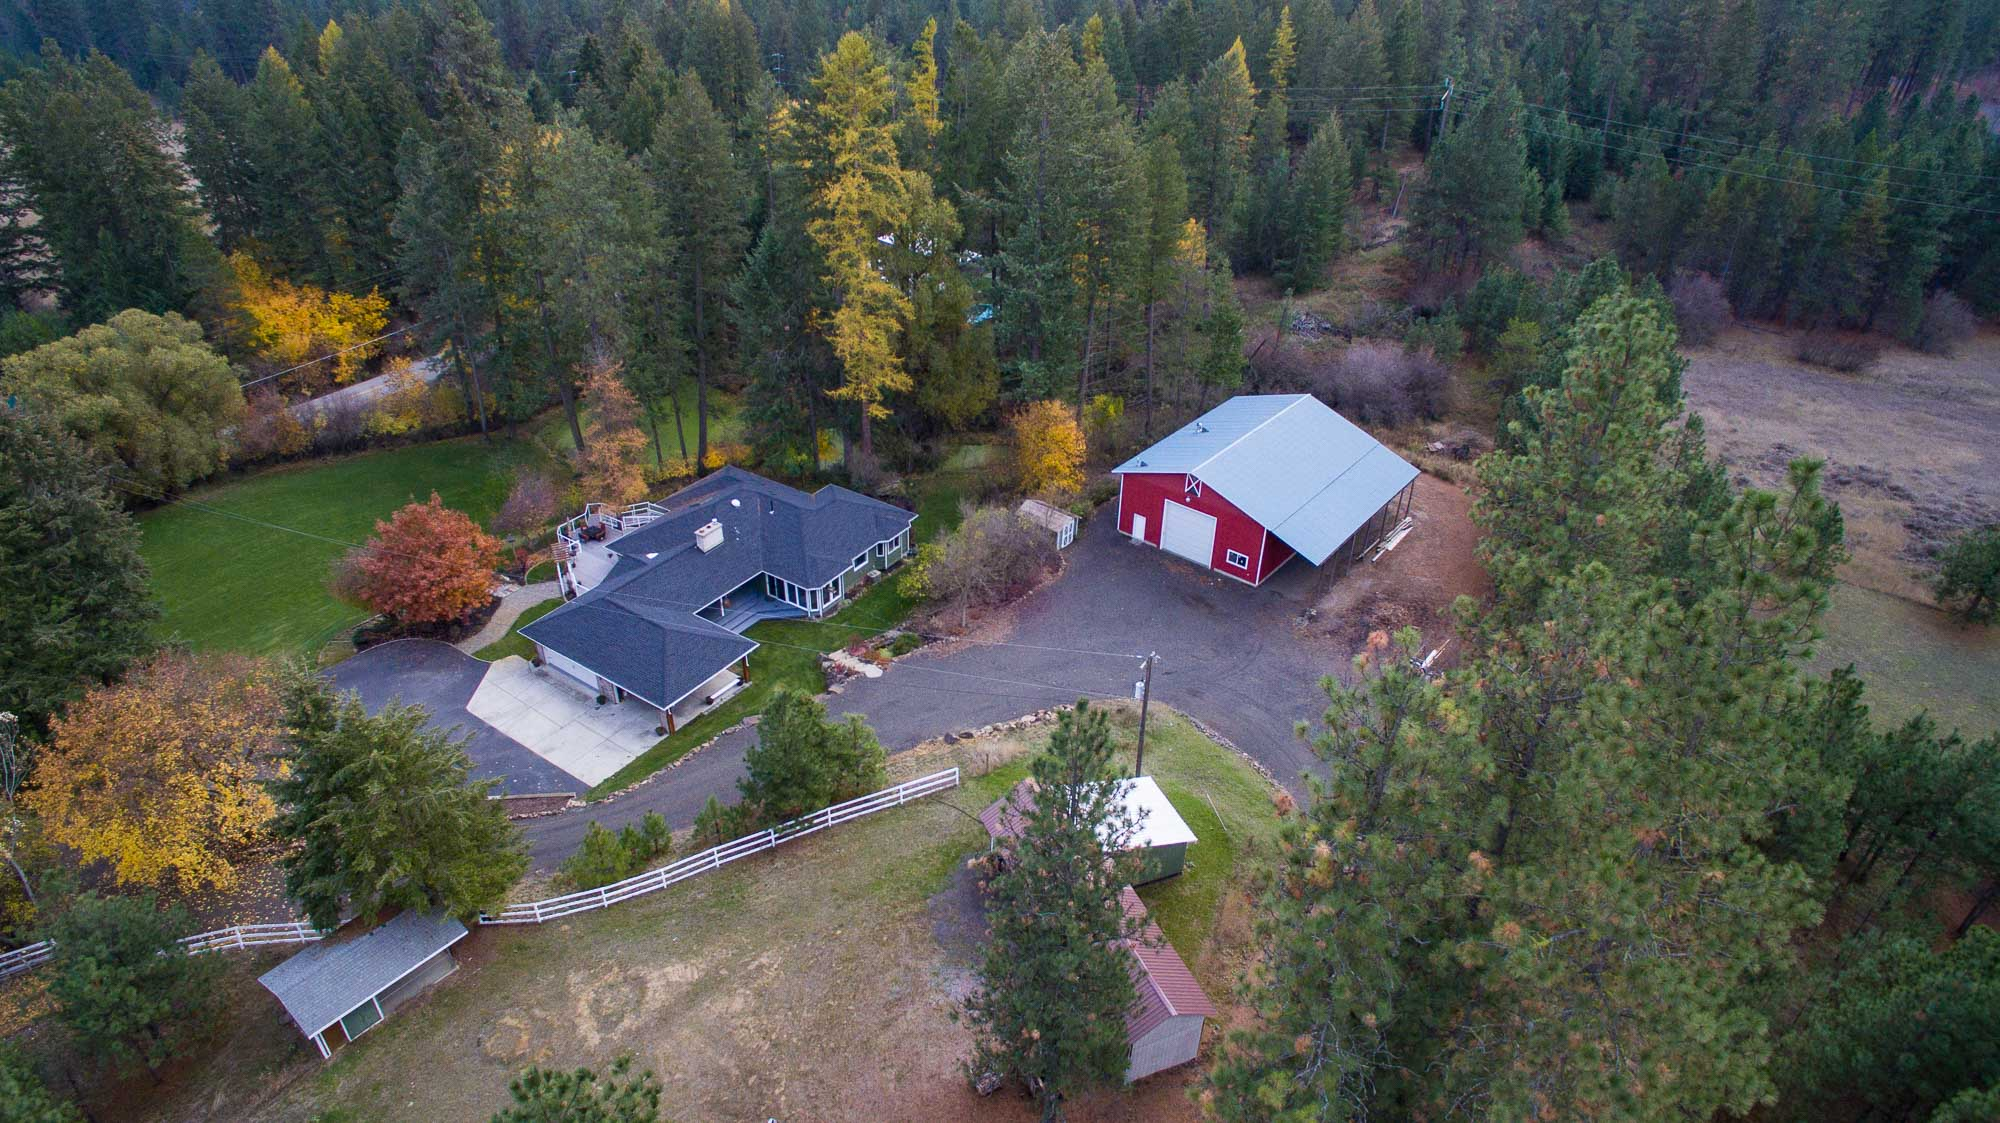 Drone Photo of North Spokane Real Estate Listing